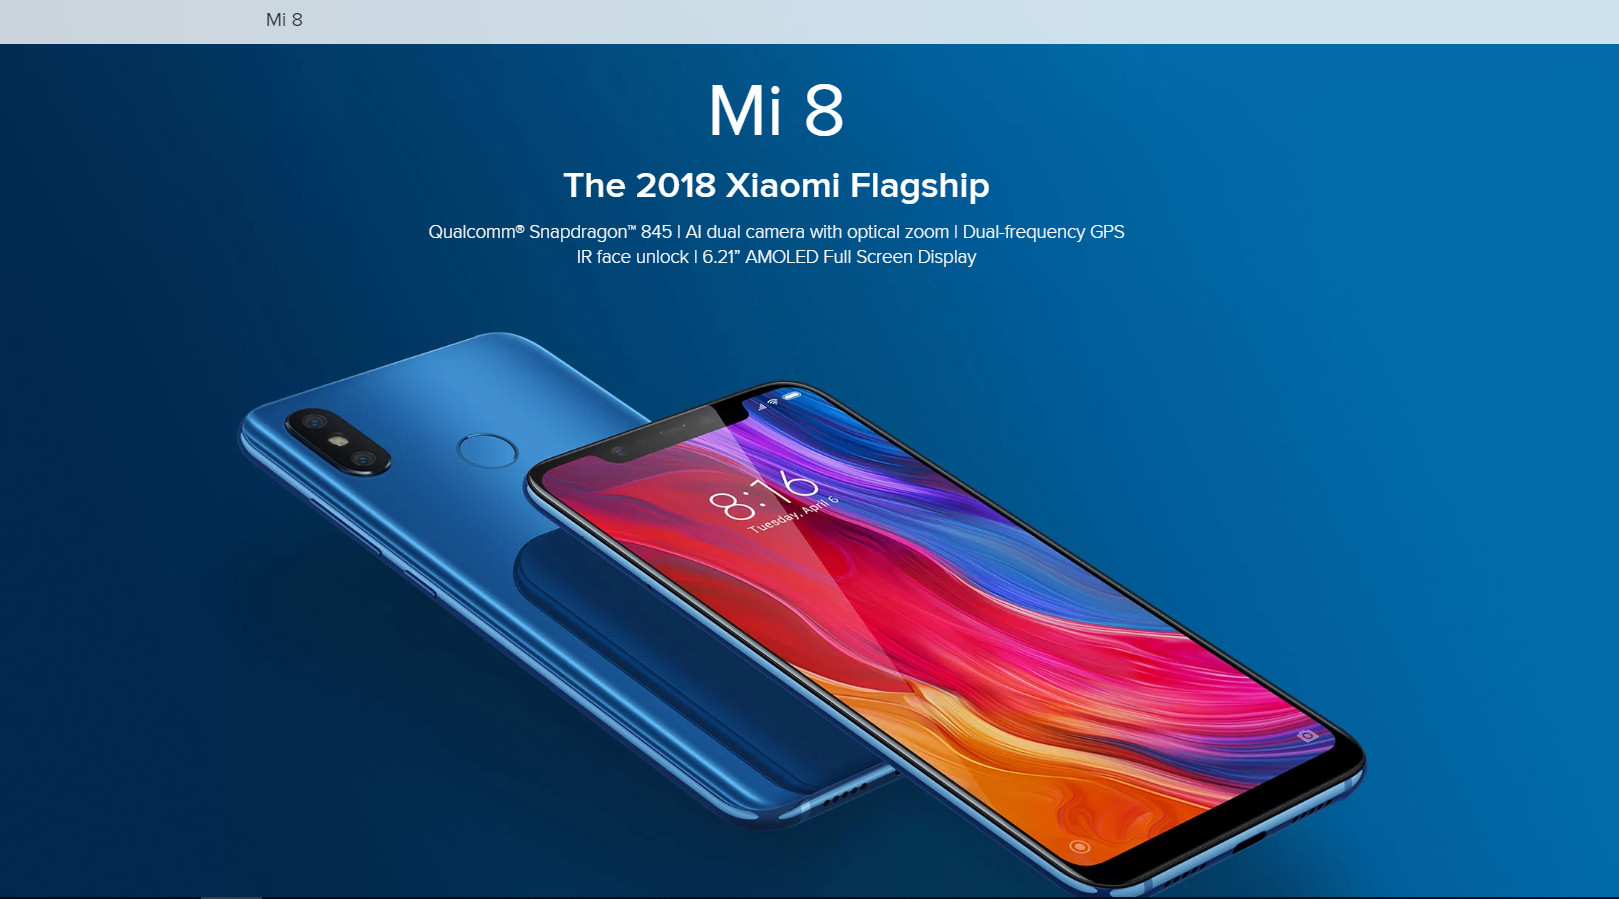 Pros and Cons of Xiaomi Mi8